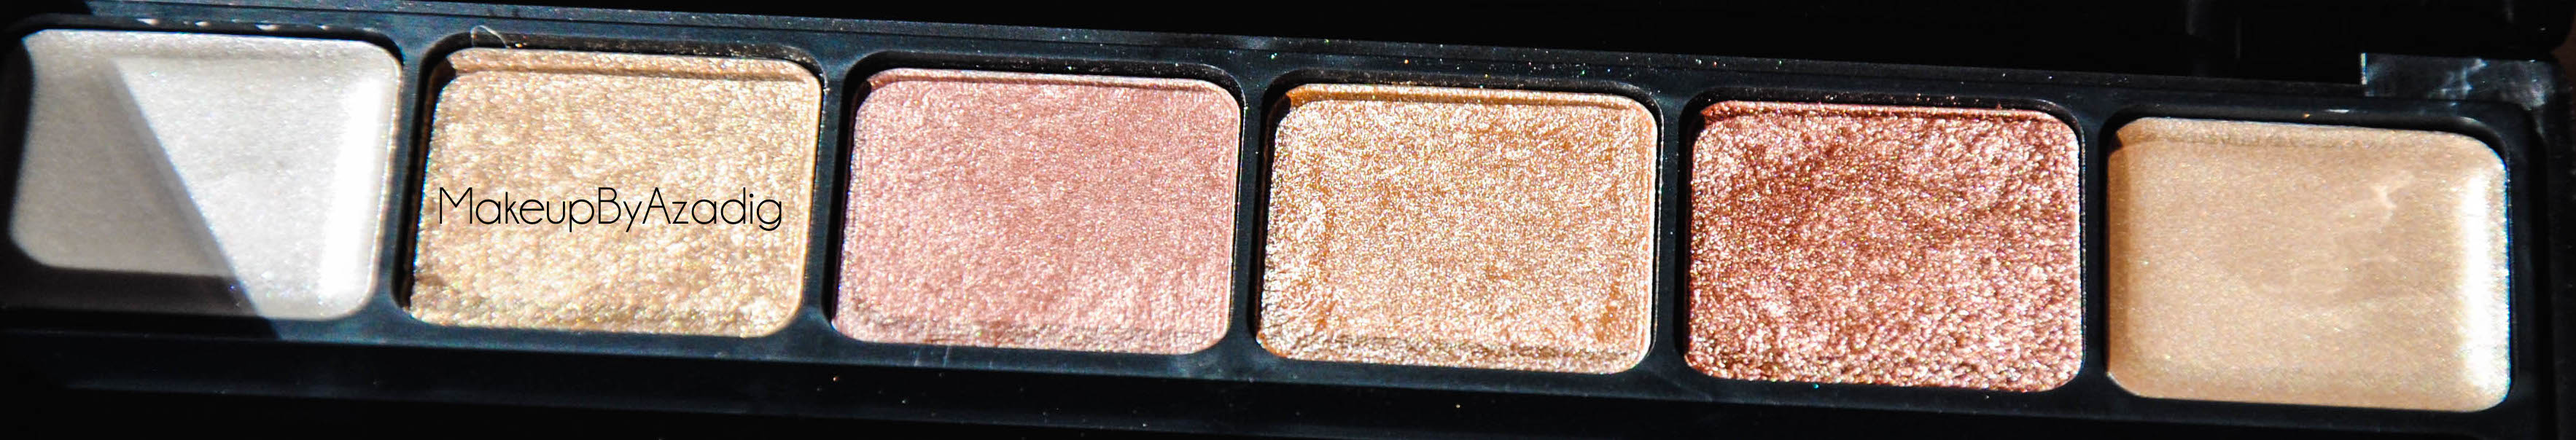 palette-eyeshadow-sleek-makeup-diamonds-in-the-rough-ilust-sephora-paris-makeupbyazadig-noel-code-promo-avis-prix-sun